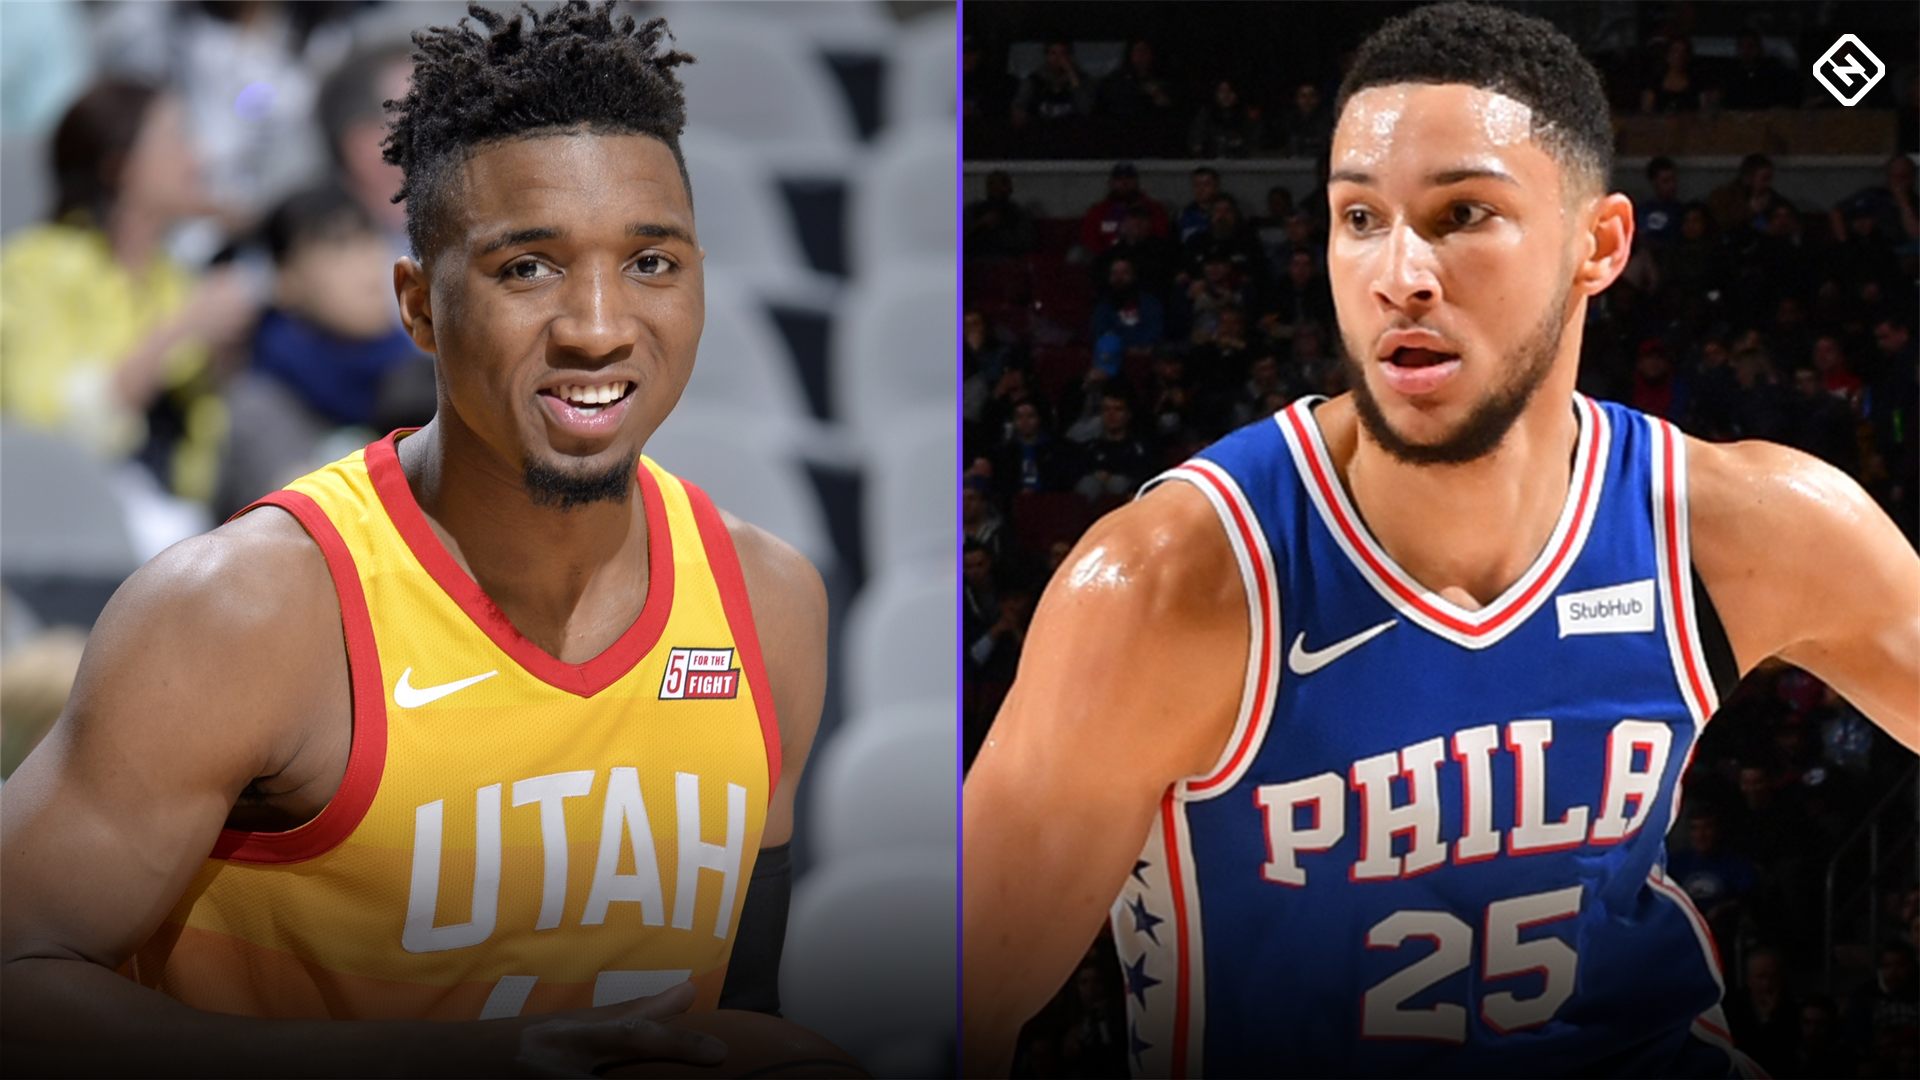 Donovan Mitchell throws shade at Ben Simmons with 'rookie' hoodie